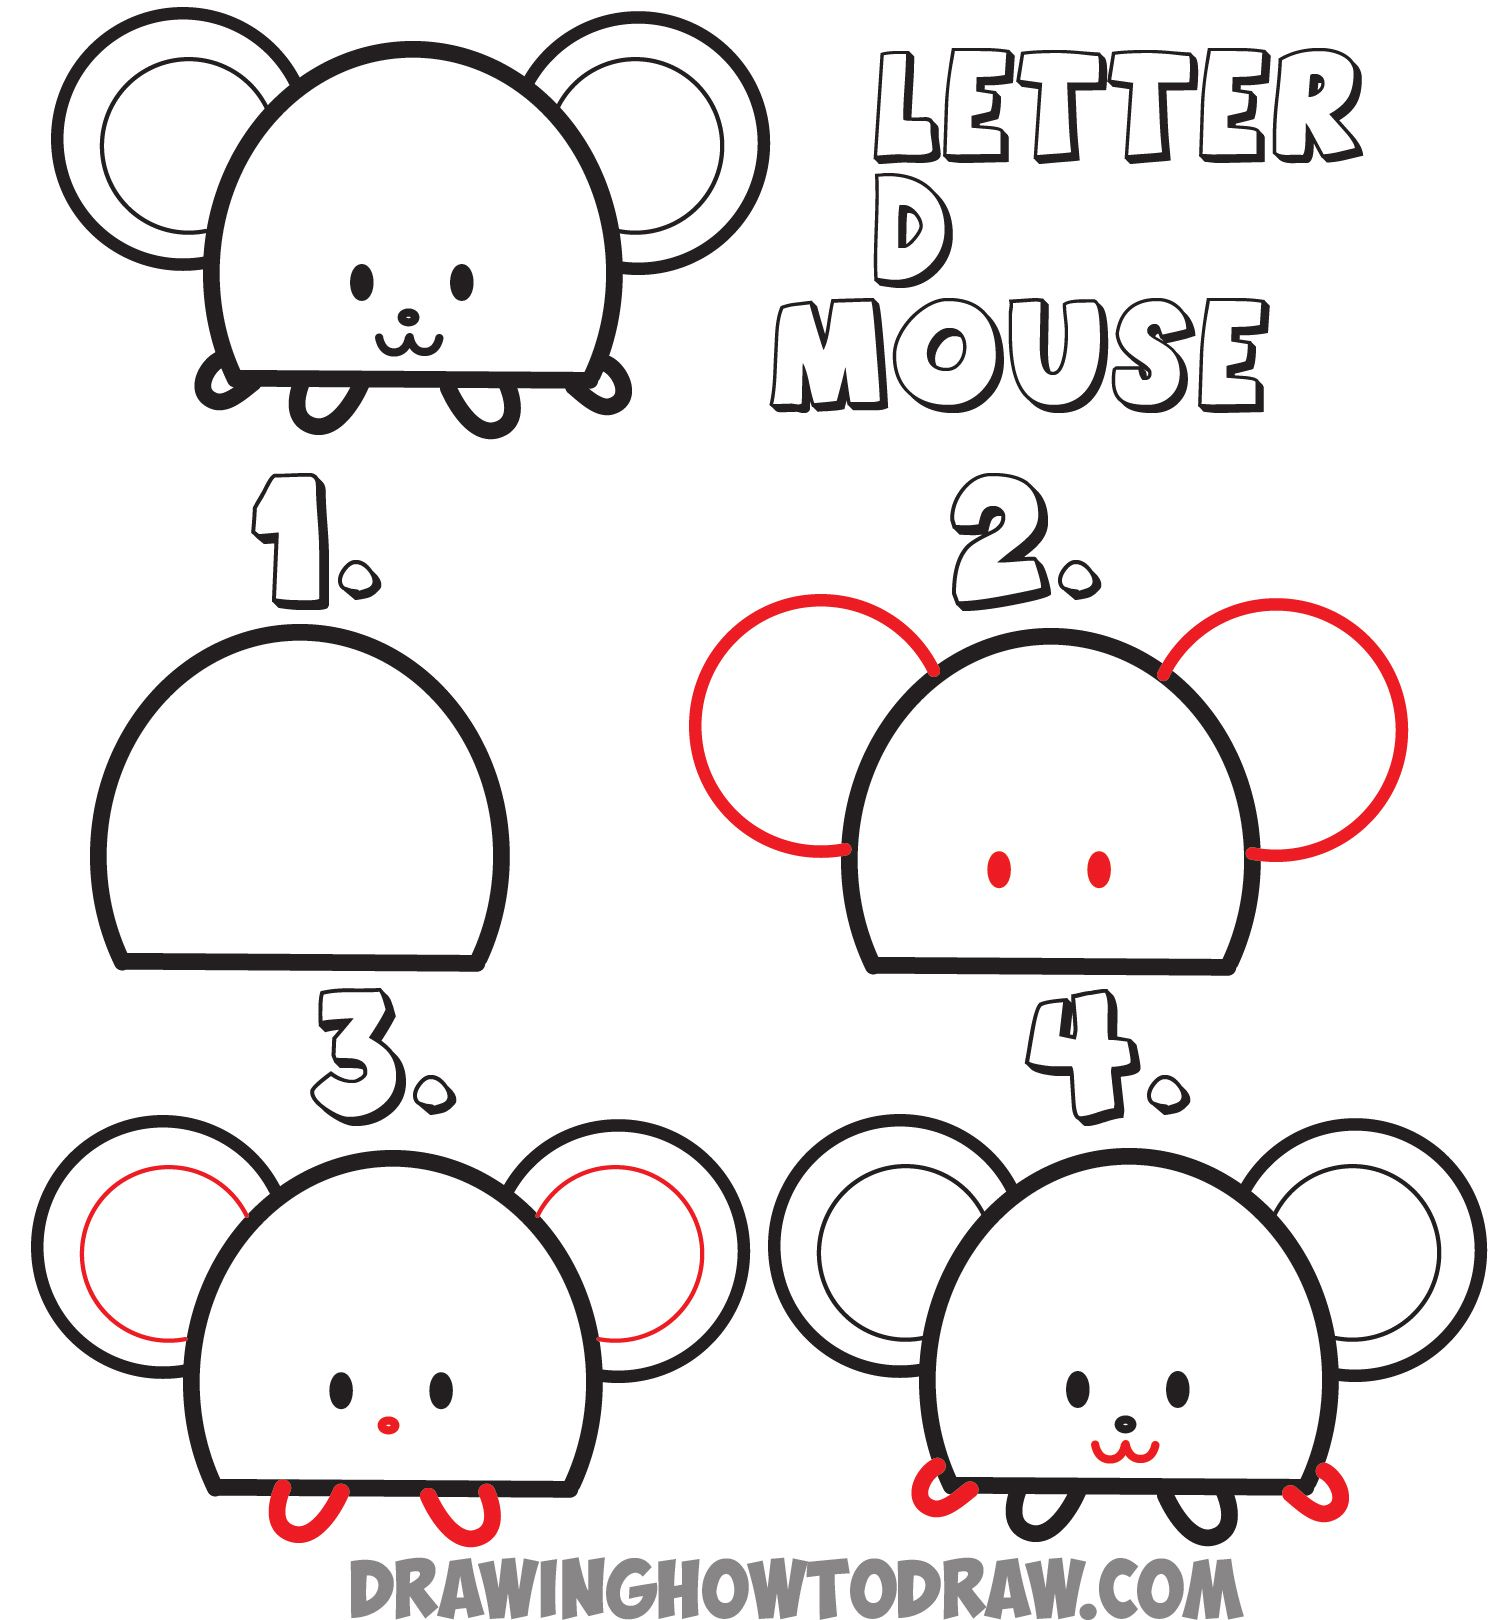 Drawing Lines With Mouse C : Huge guide to drawing cartoon animals from the uppercase